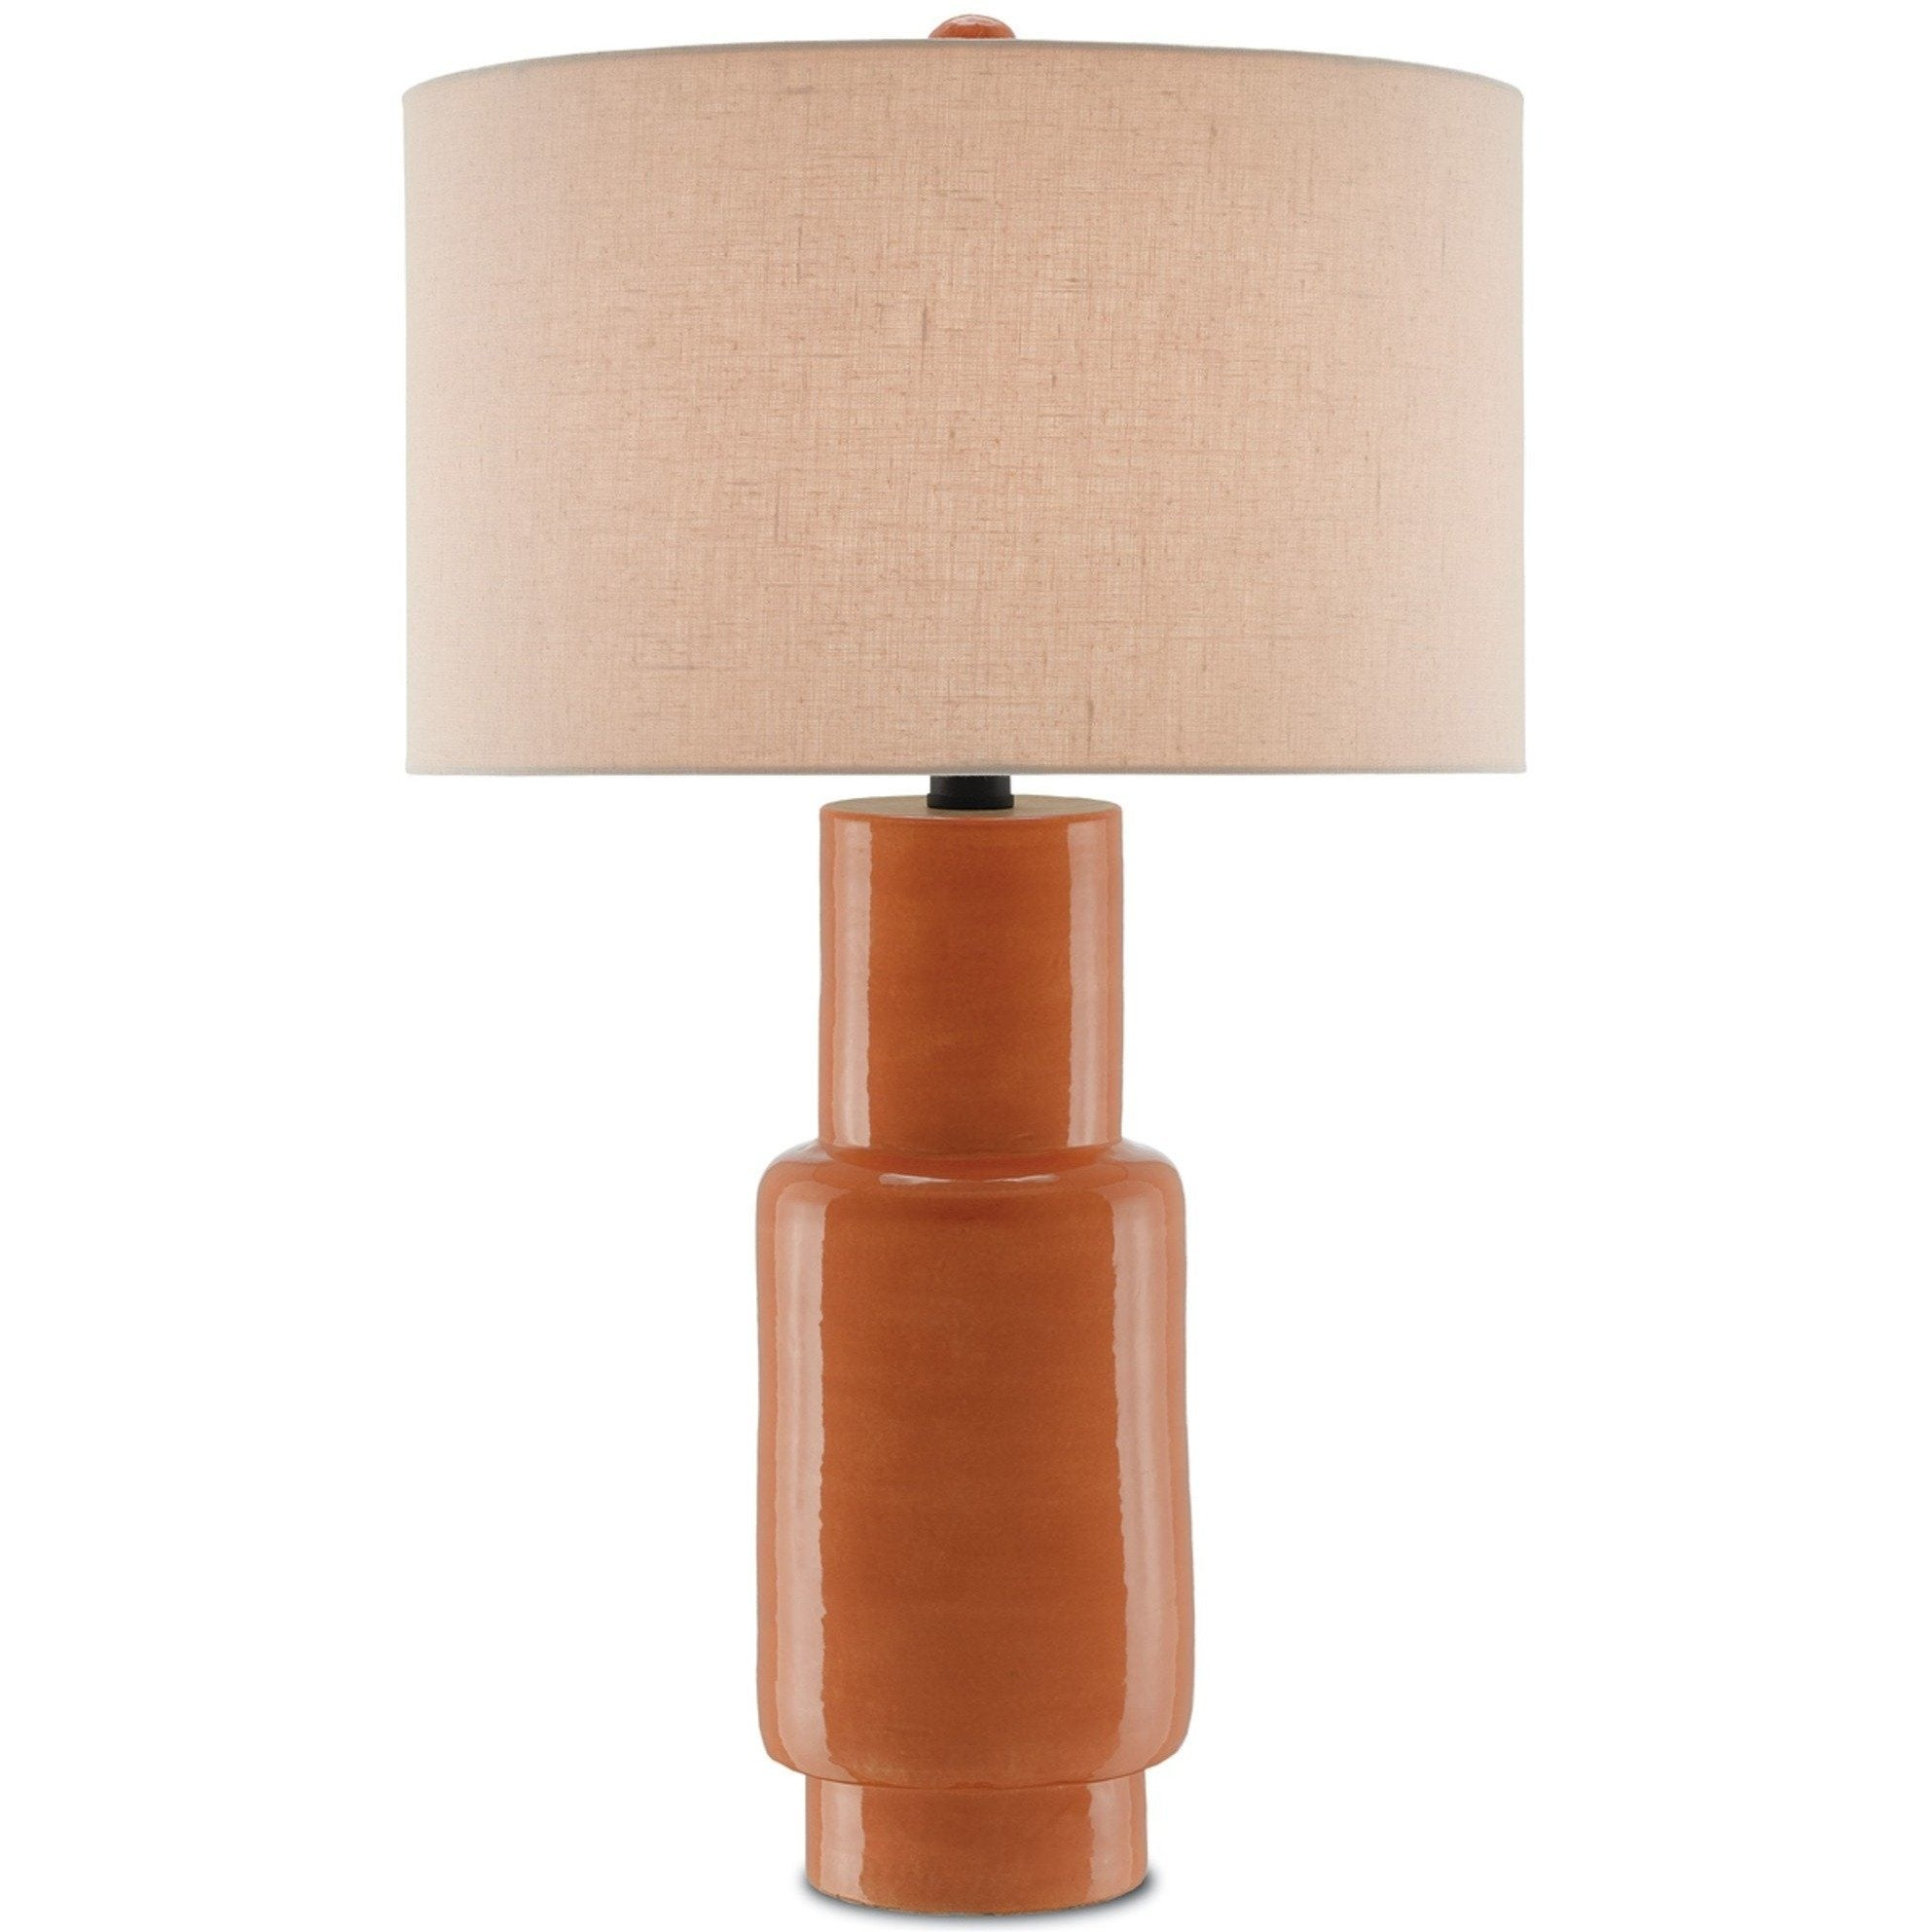 Currey and Company Janeen Table Lamp, Orange 6000-0192 - LOVECUP